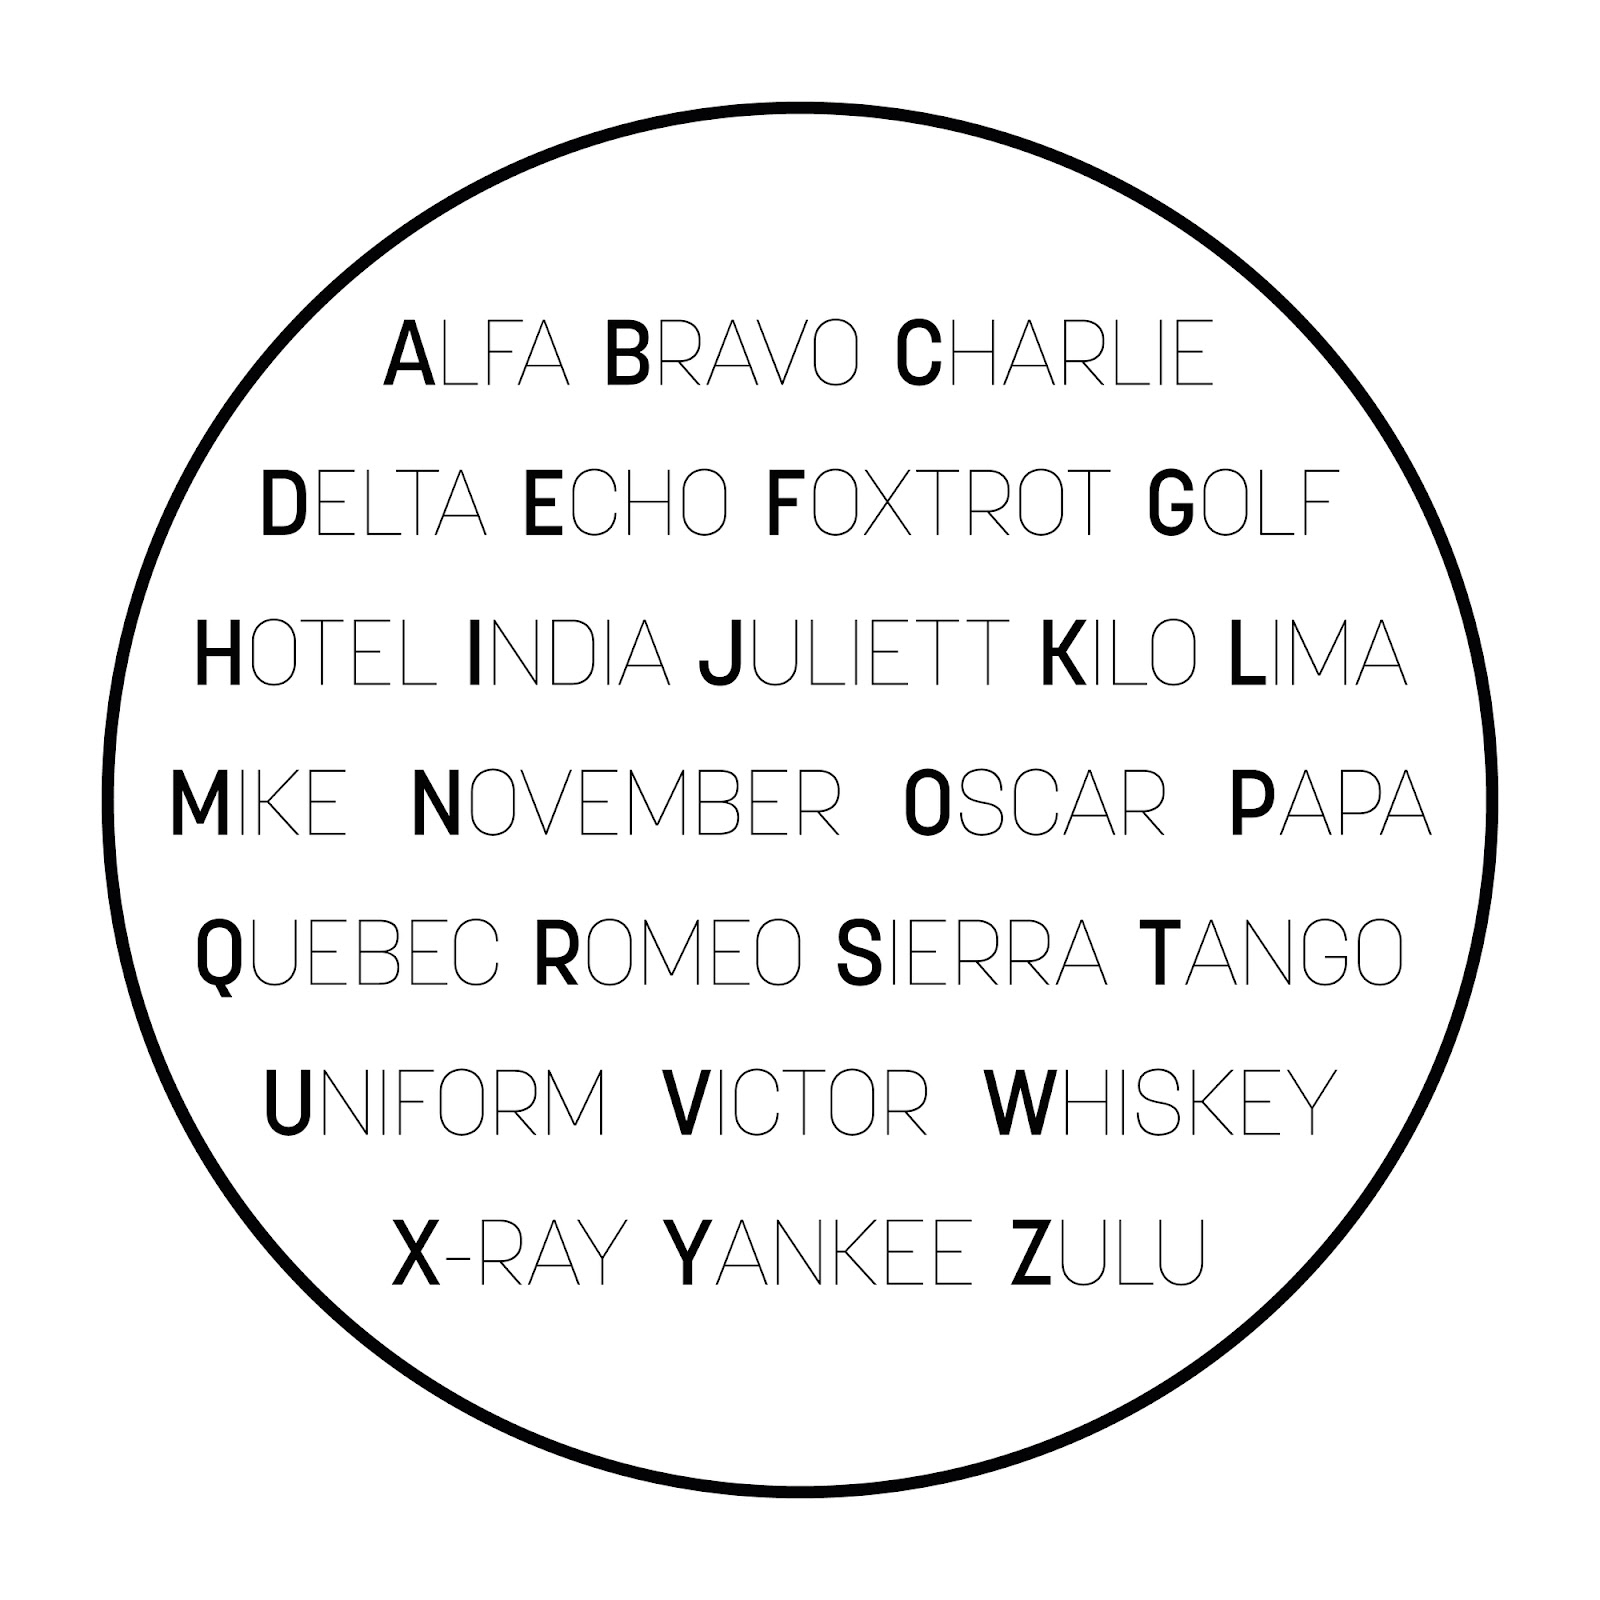 The phonetic alphabet spelled out